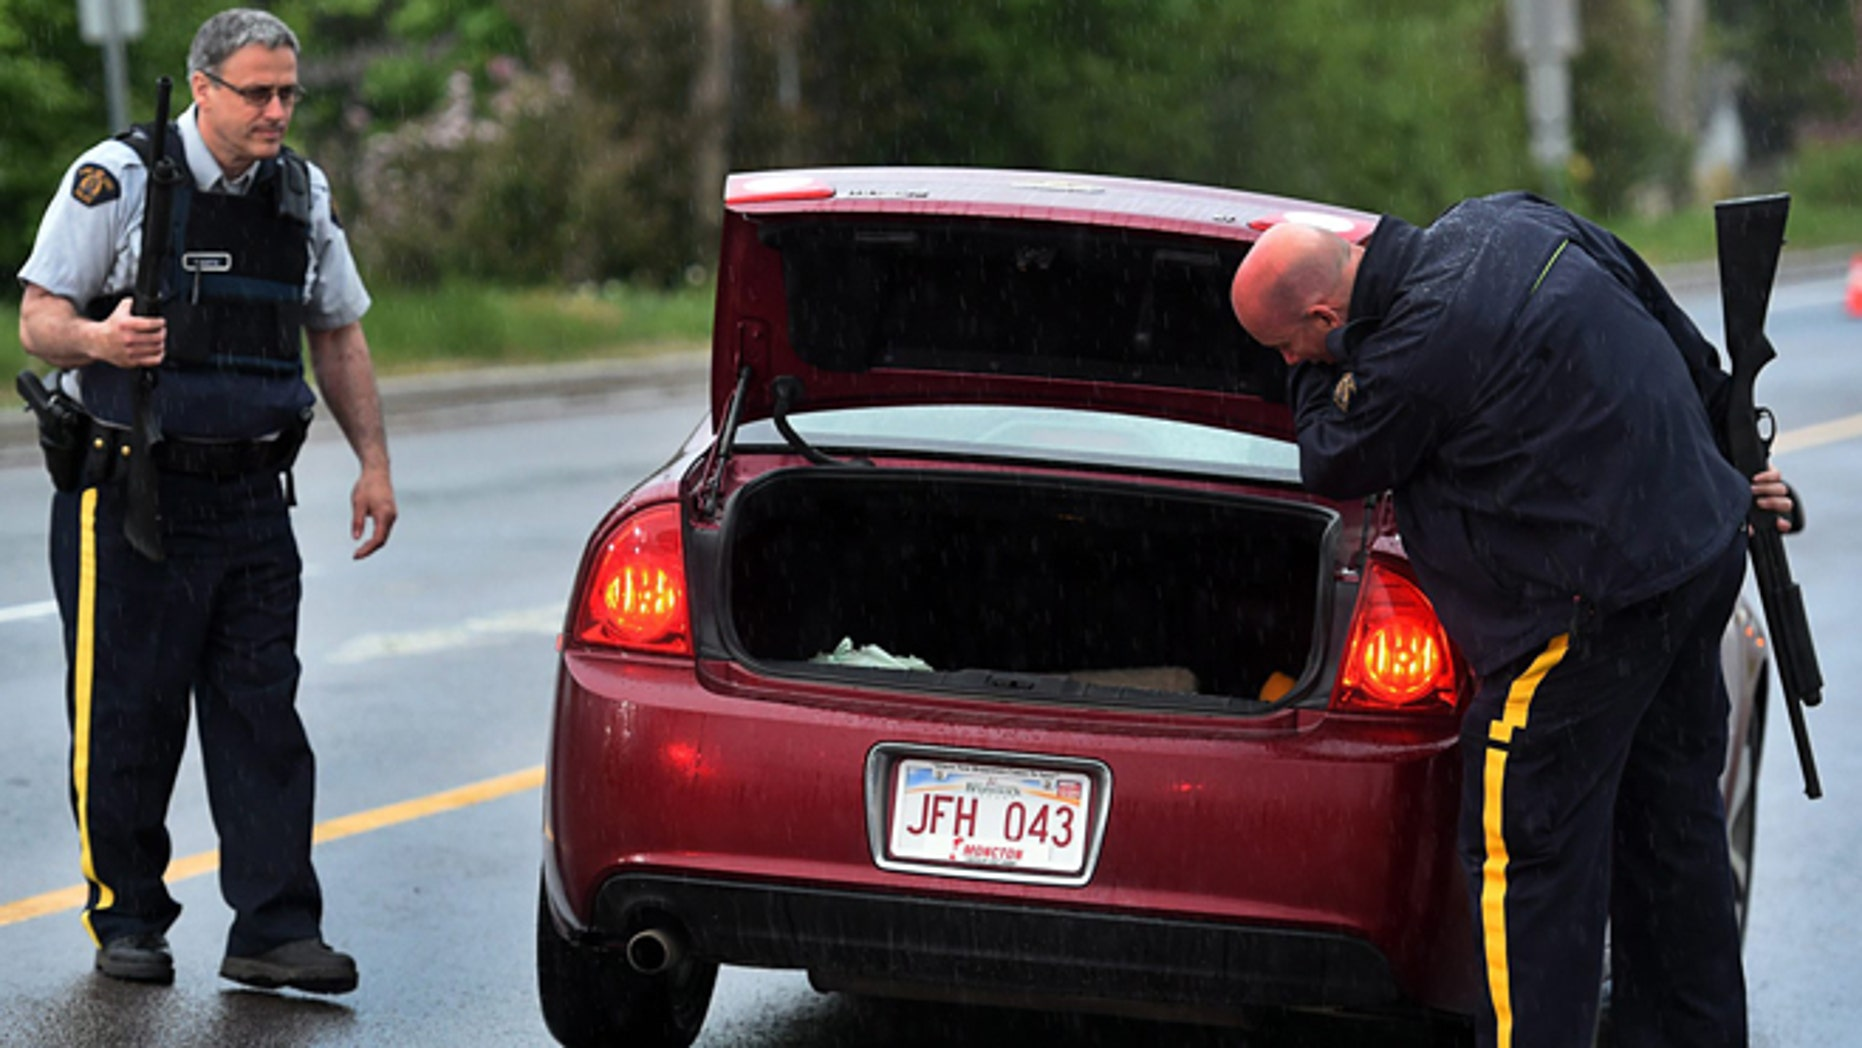 June 5, 2014: Police officers check a car at a roadblock in Moncton, New Brunswick.